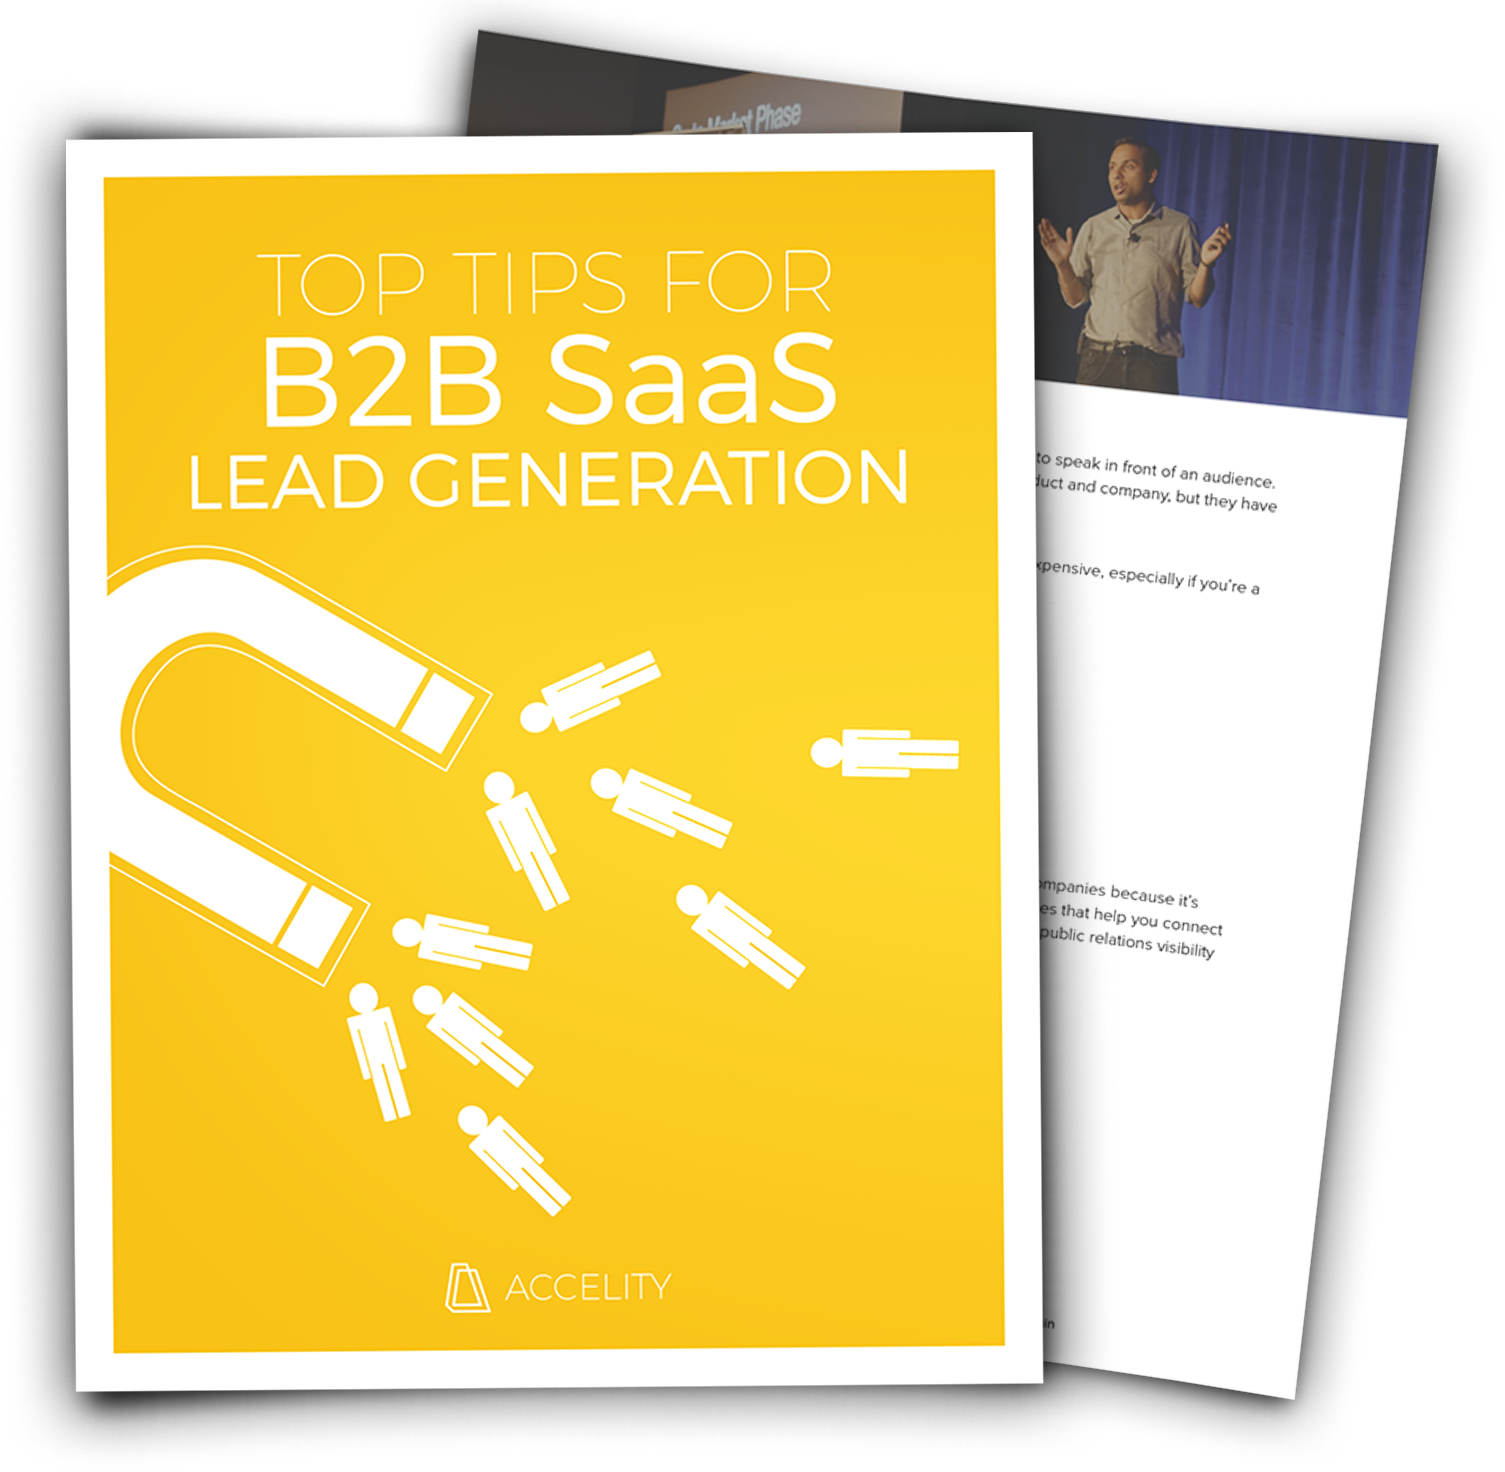 Top Tips for B2B SaaS Lead Generation